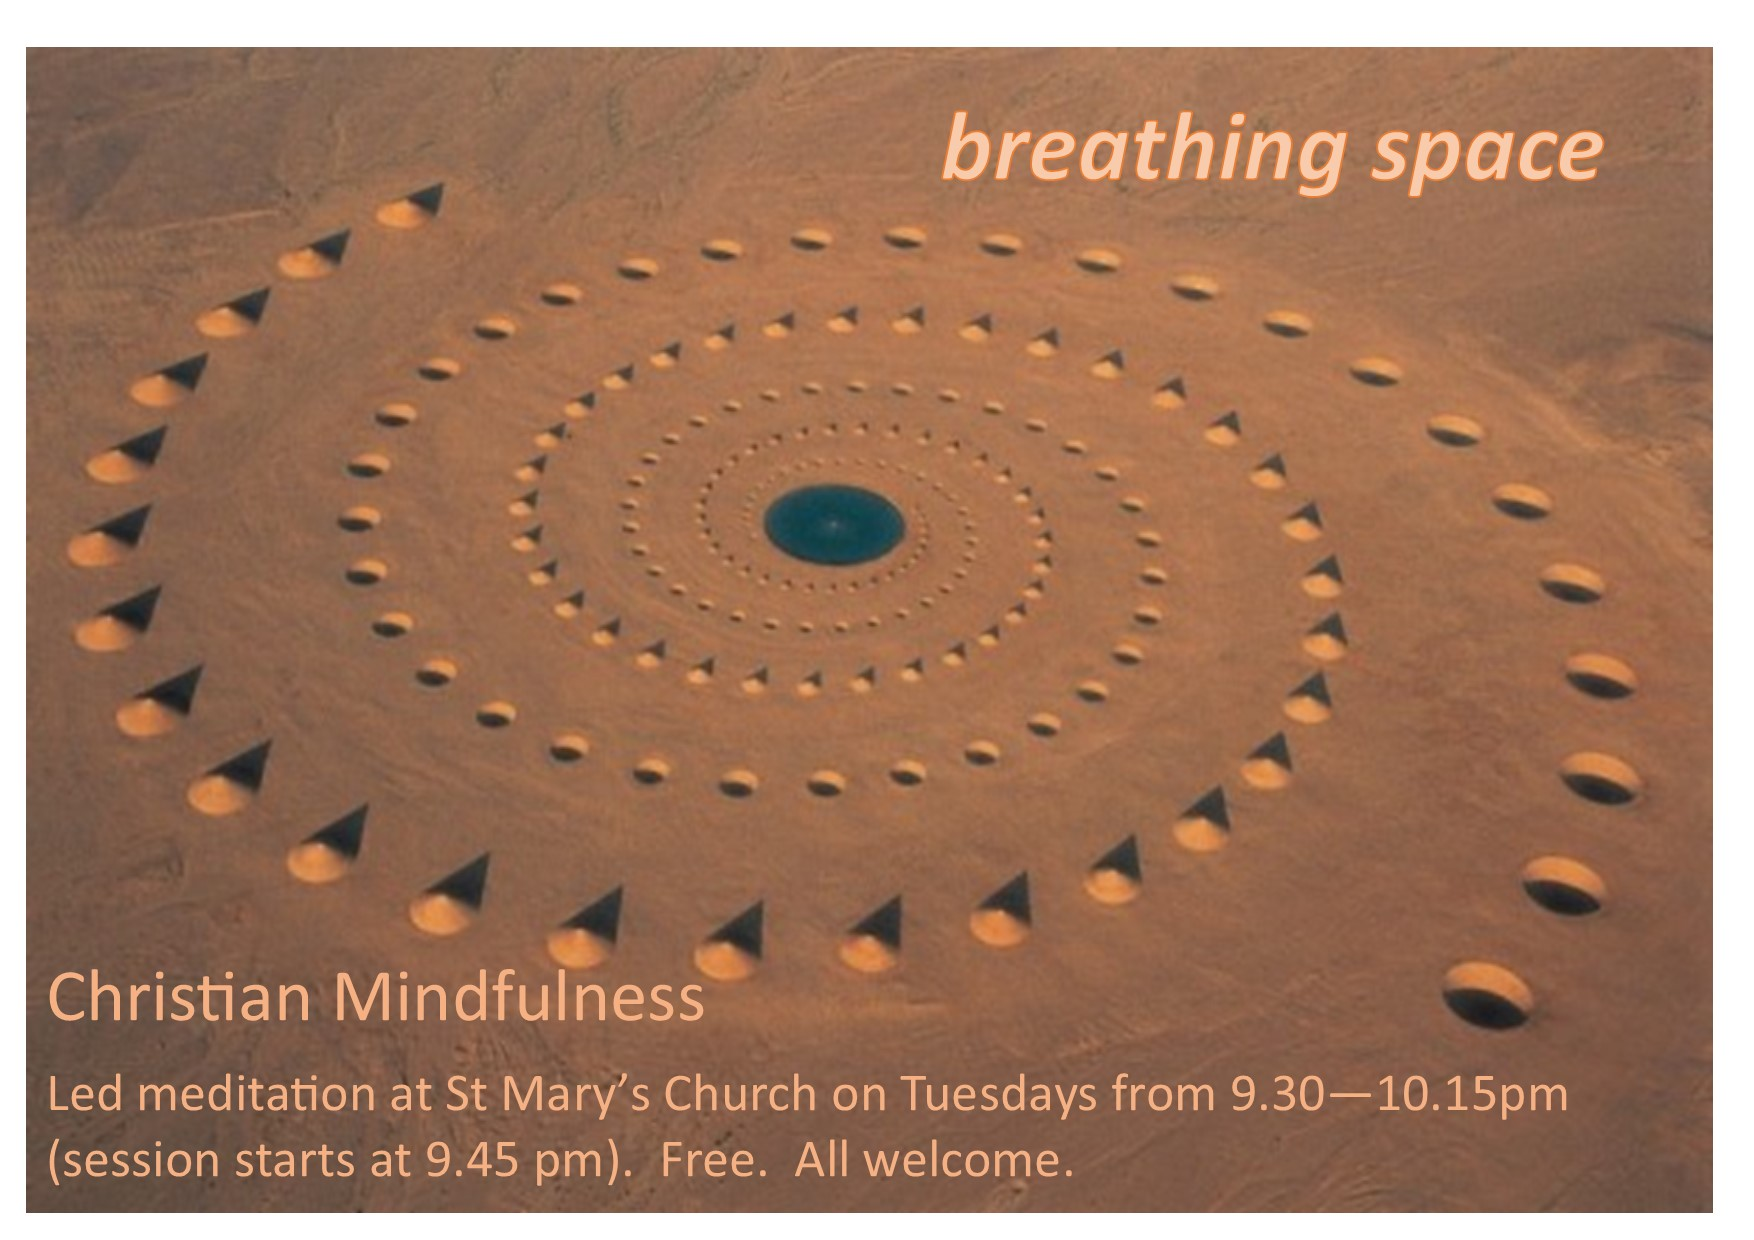 Breathing space flyer